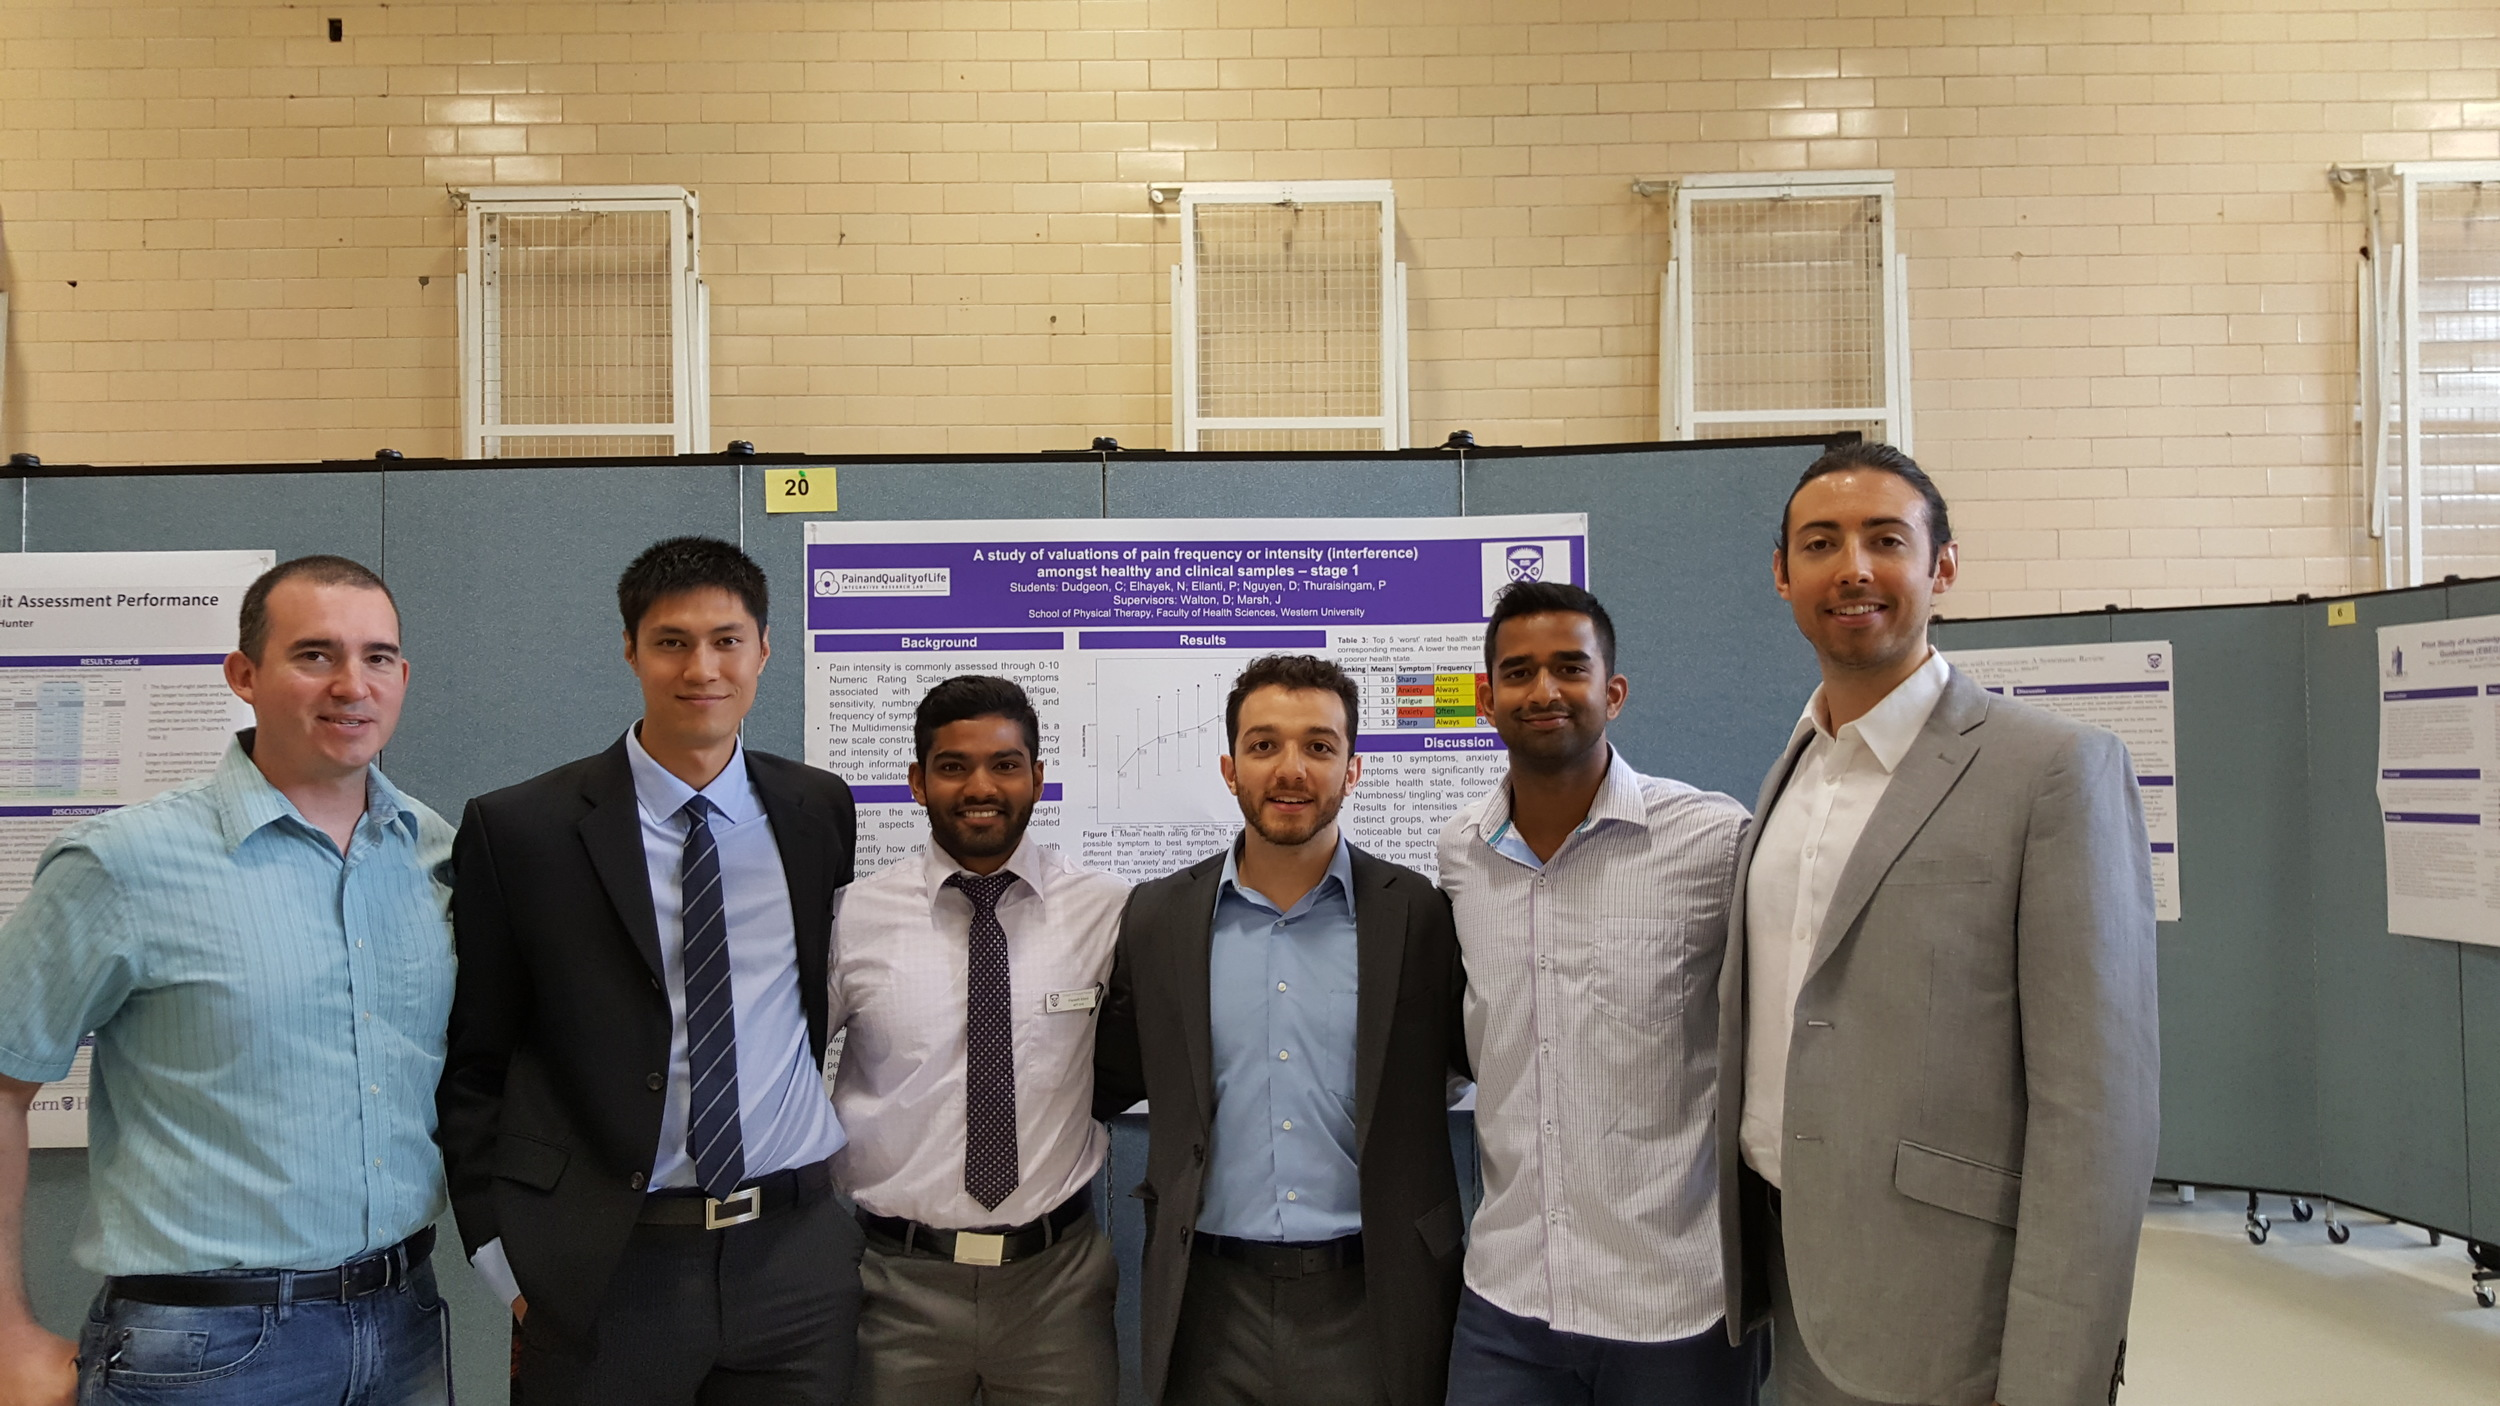 David Nguyen, Praneeth Ellanti, Nader Elhayek, Piramilan Thuraisingam and Cody Dudgeon present their work on the new Multidimensional Symptom Index, a symptom x frequency x intensity-based self-report measure that quantifies up to 120 different health states.  This work is continuing and the MSI should be ready for publication by the end of 2016.